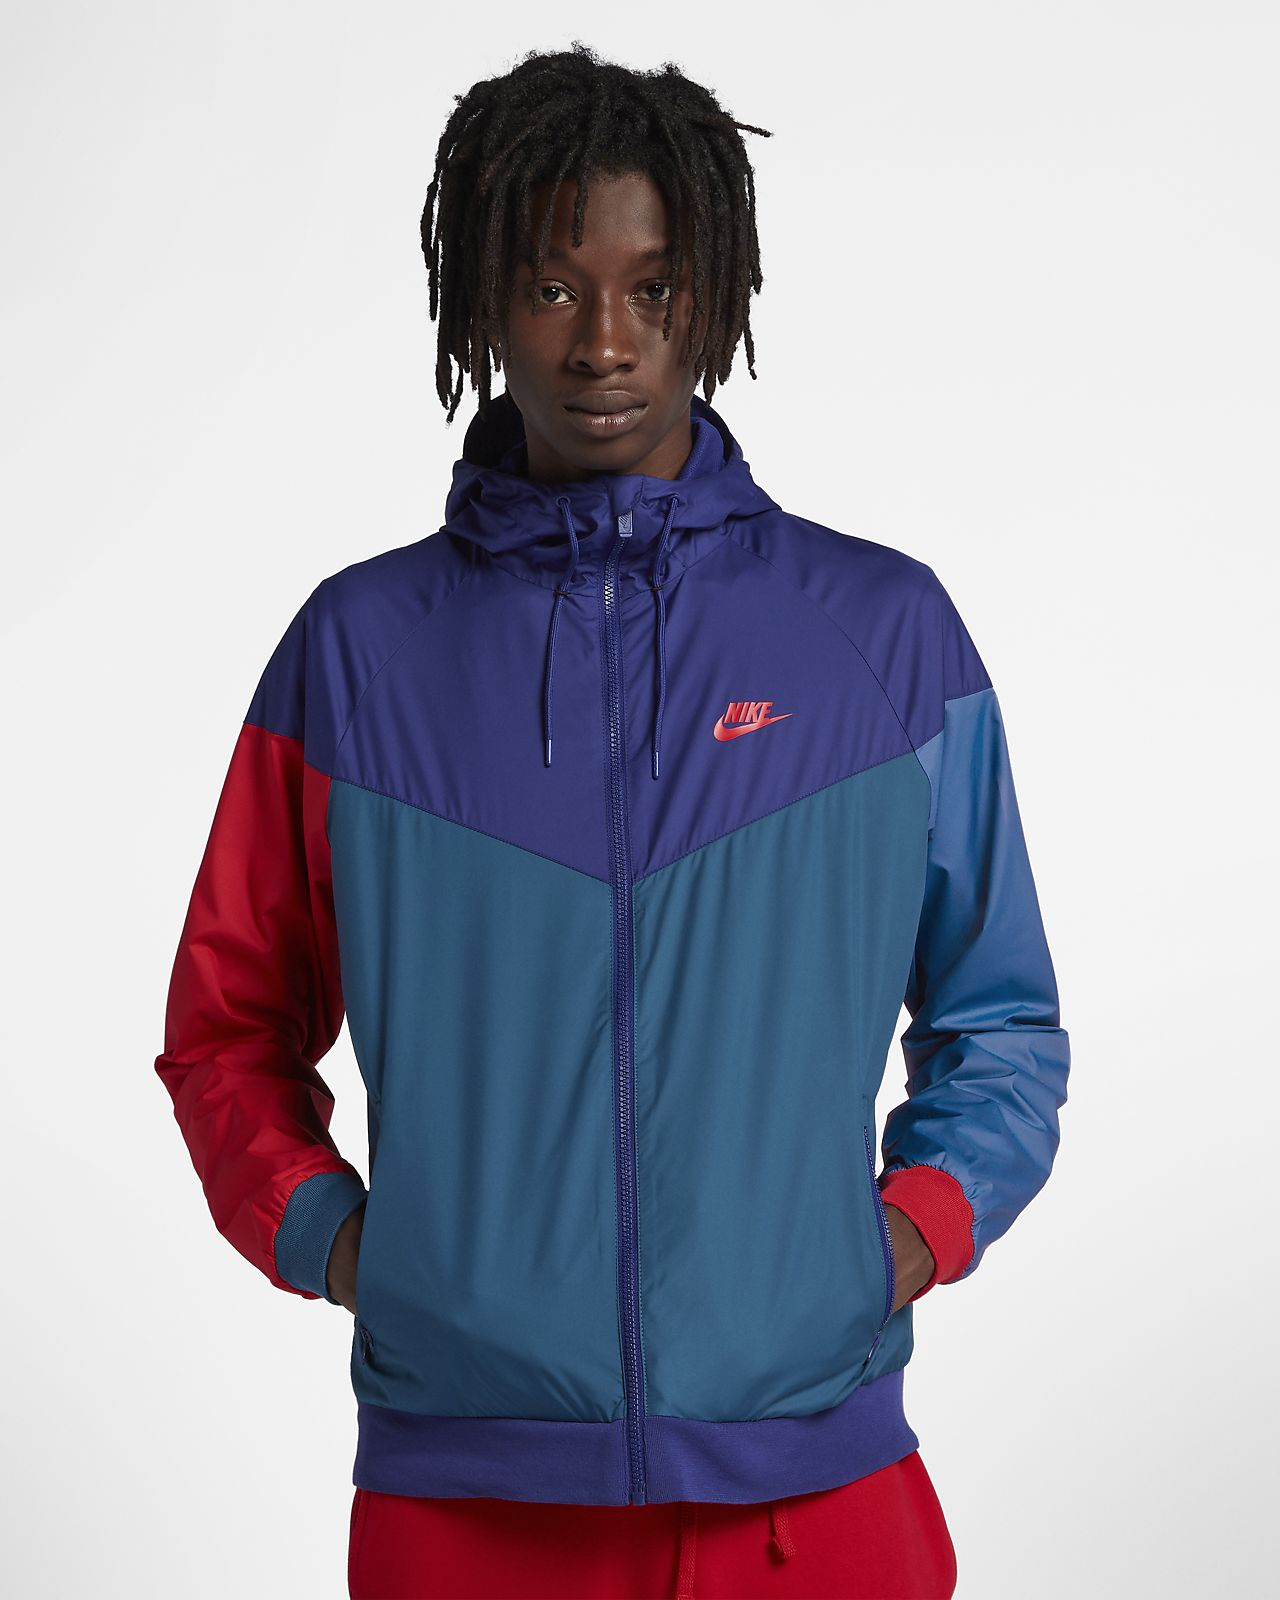 49a33823b6 Low Resolution Nike Sportswear Windrunner Men s Jacket Nike Sportswear  Windrunner Men s Jacket